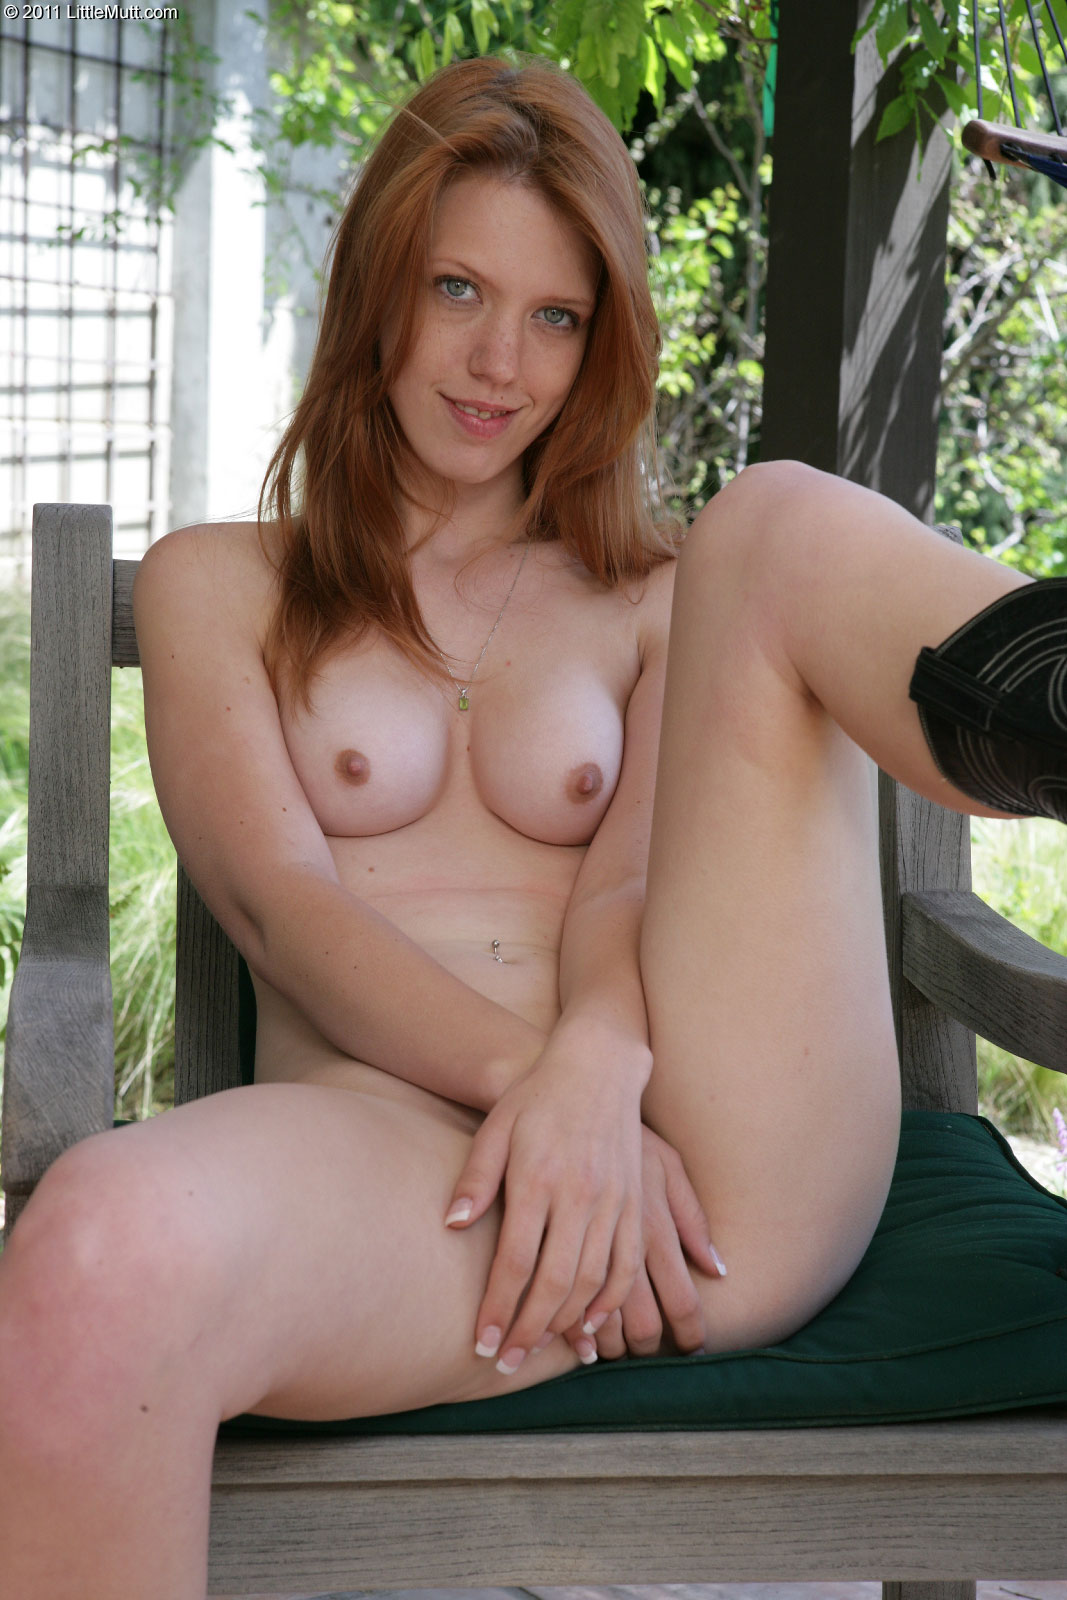 Hot little college pussy